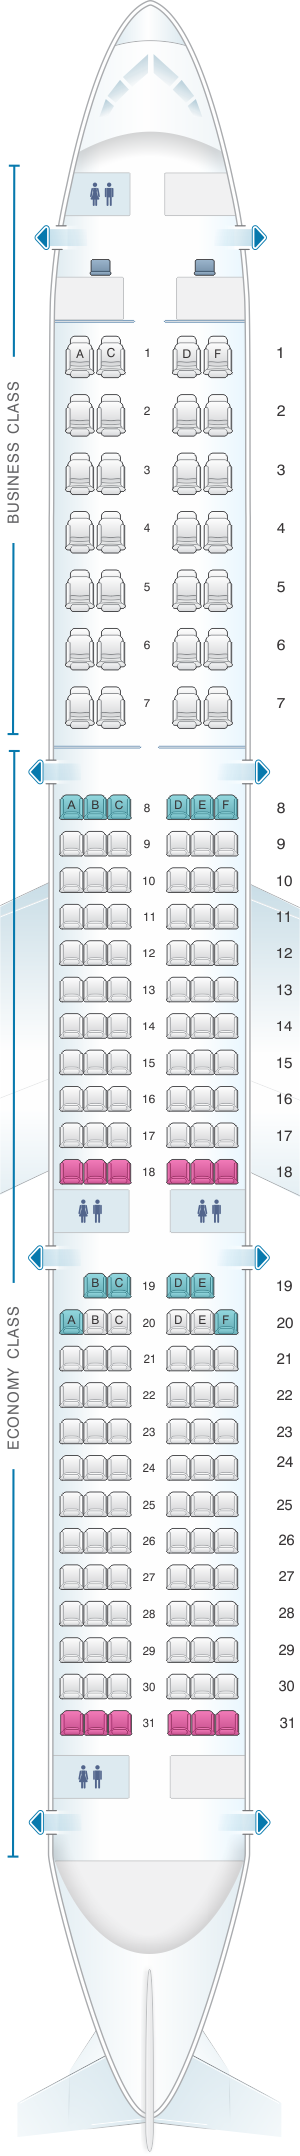 Seat Map Aeroflot Russian Airlines Airbus A321